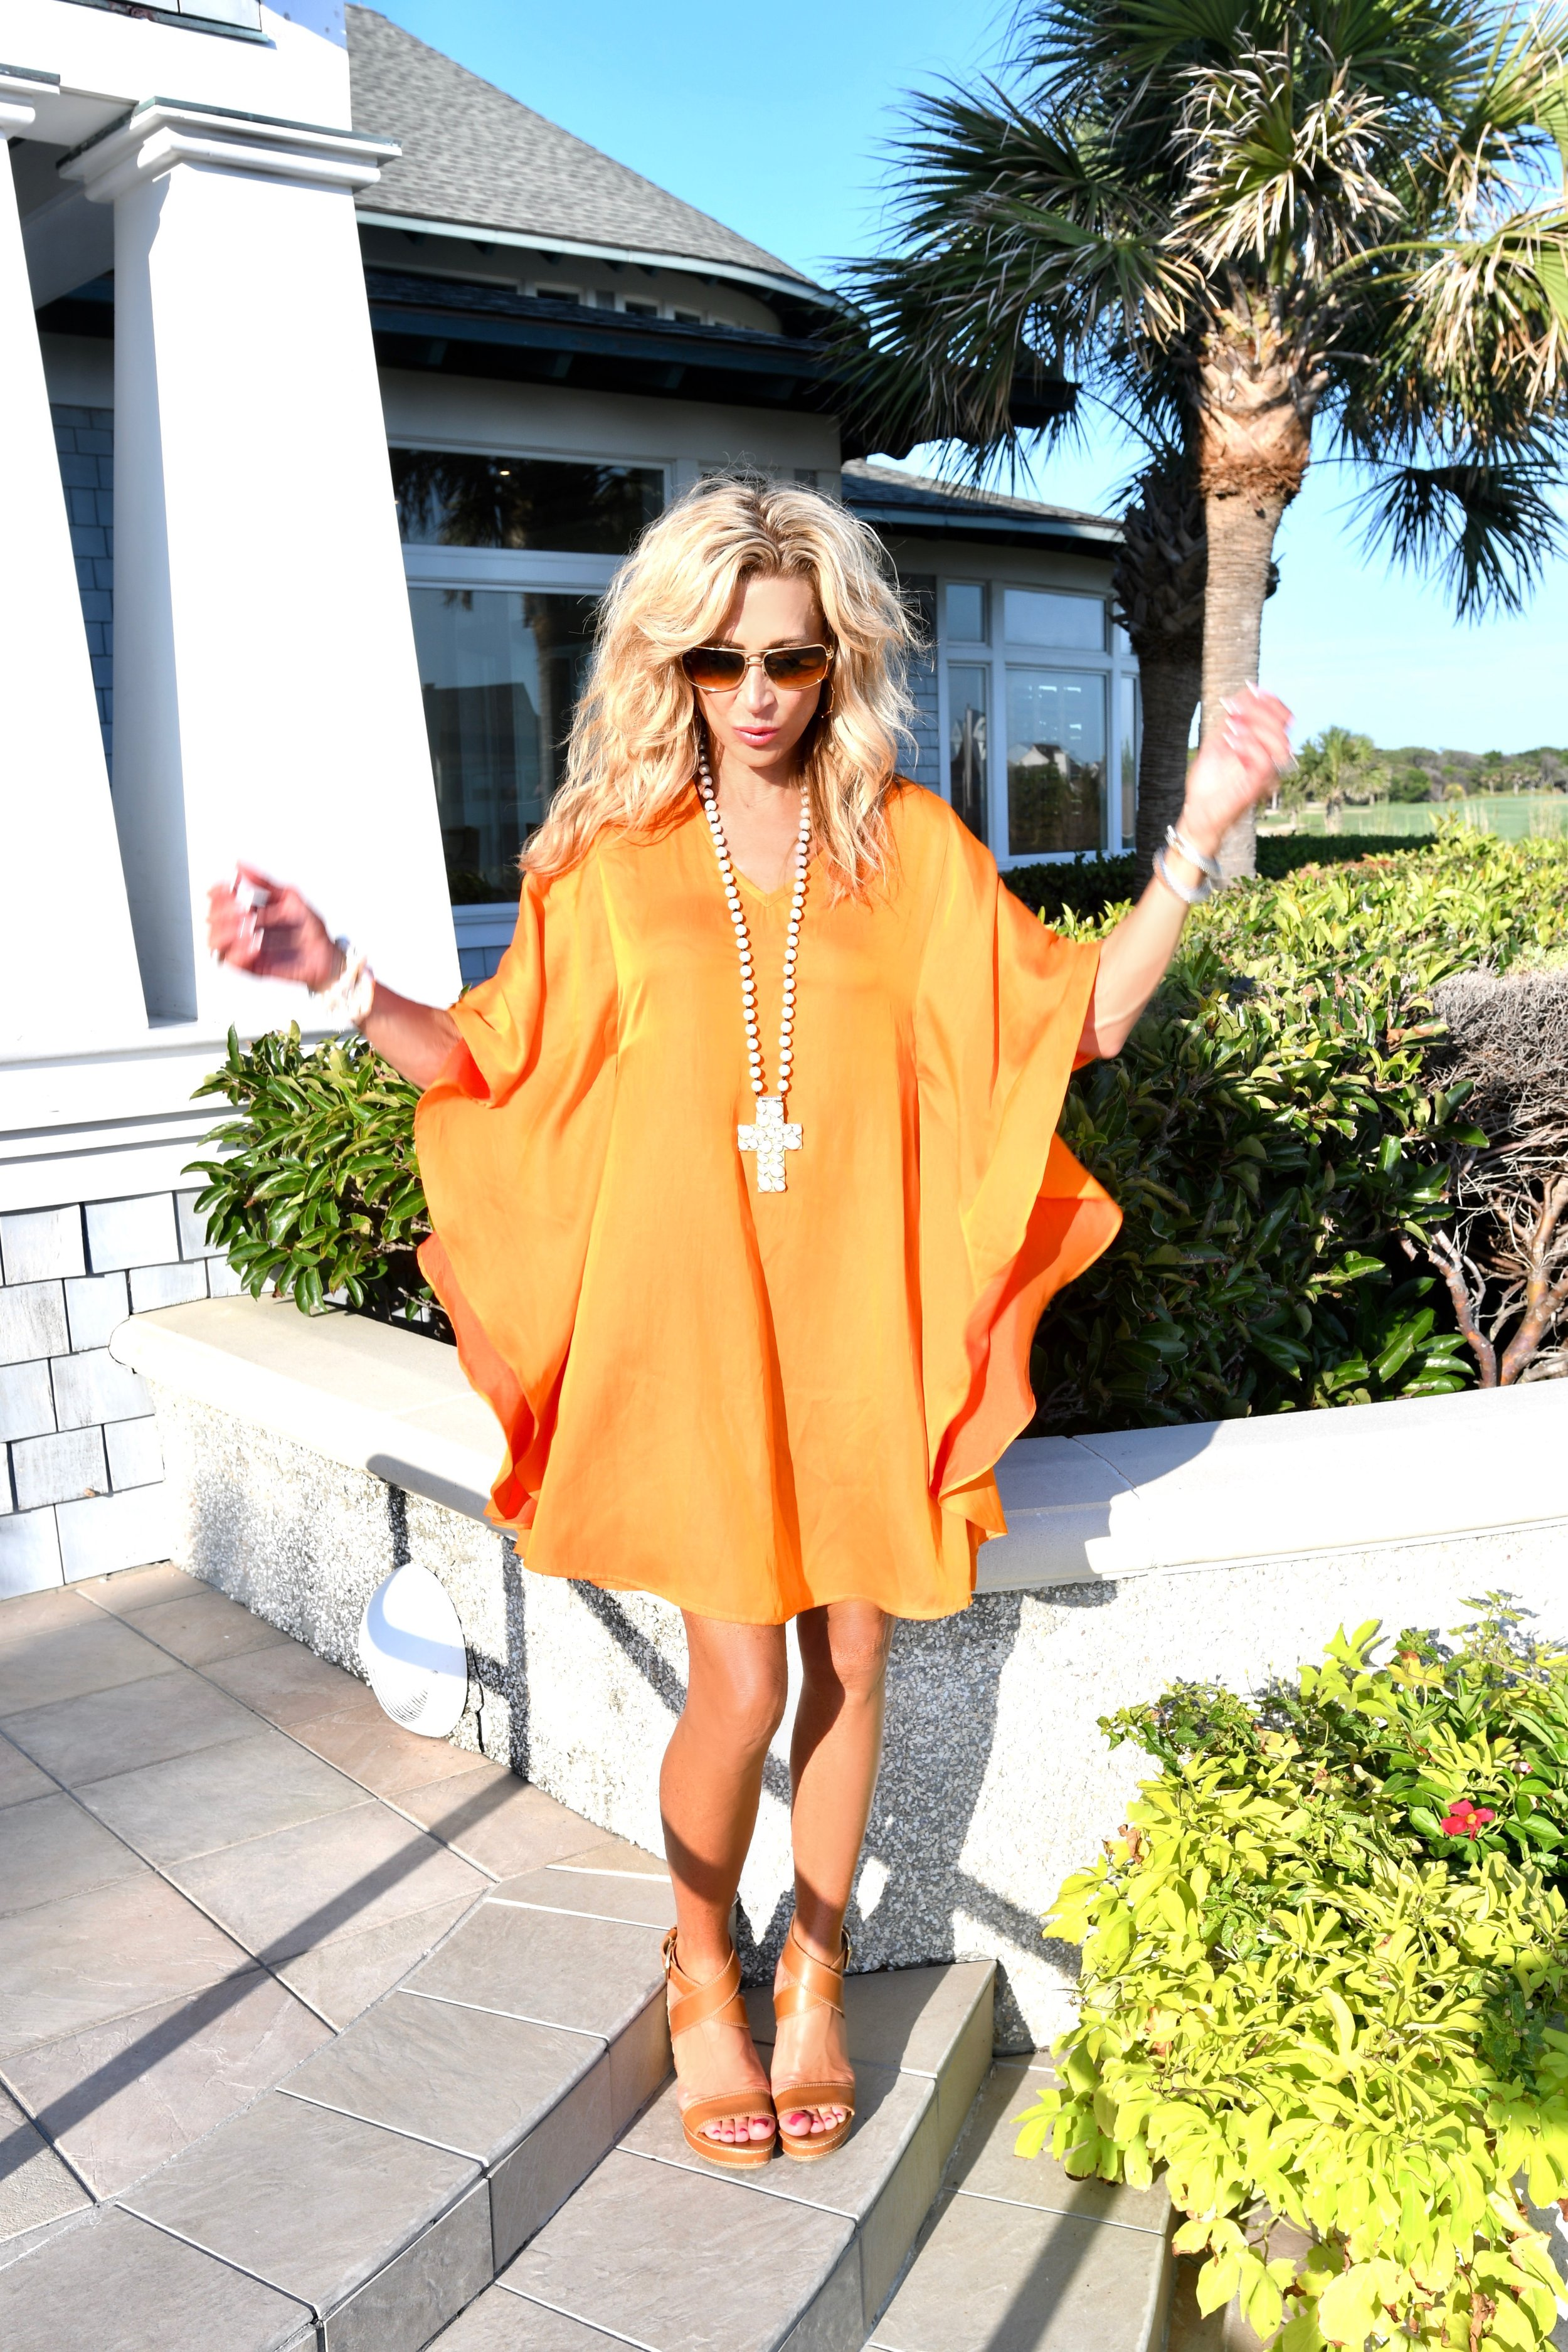 Beach Outfit Idea - Julie Miles Resort Dress & Pearls - Crazy Blonde Life